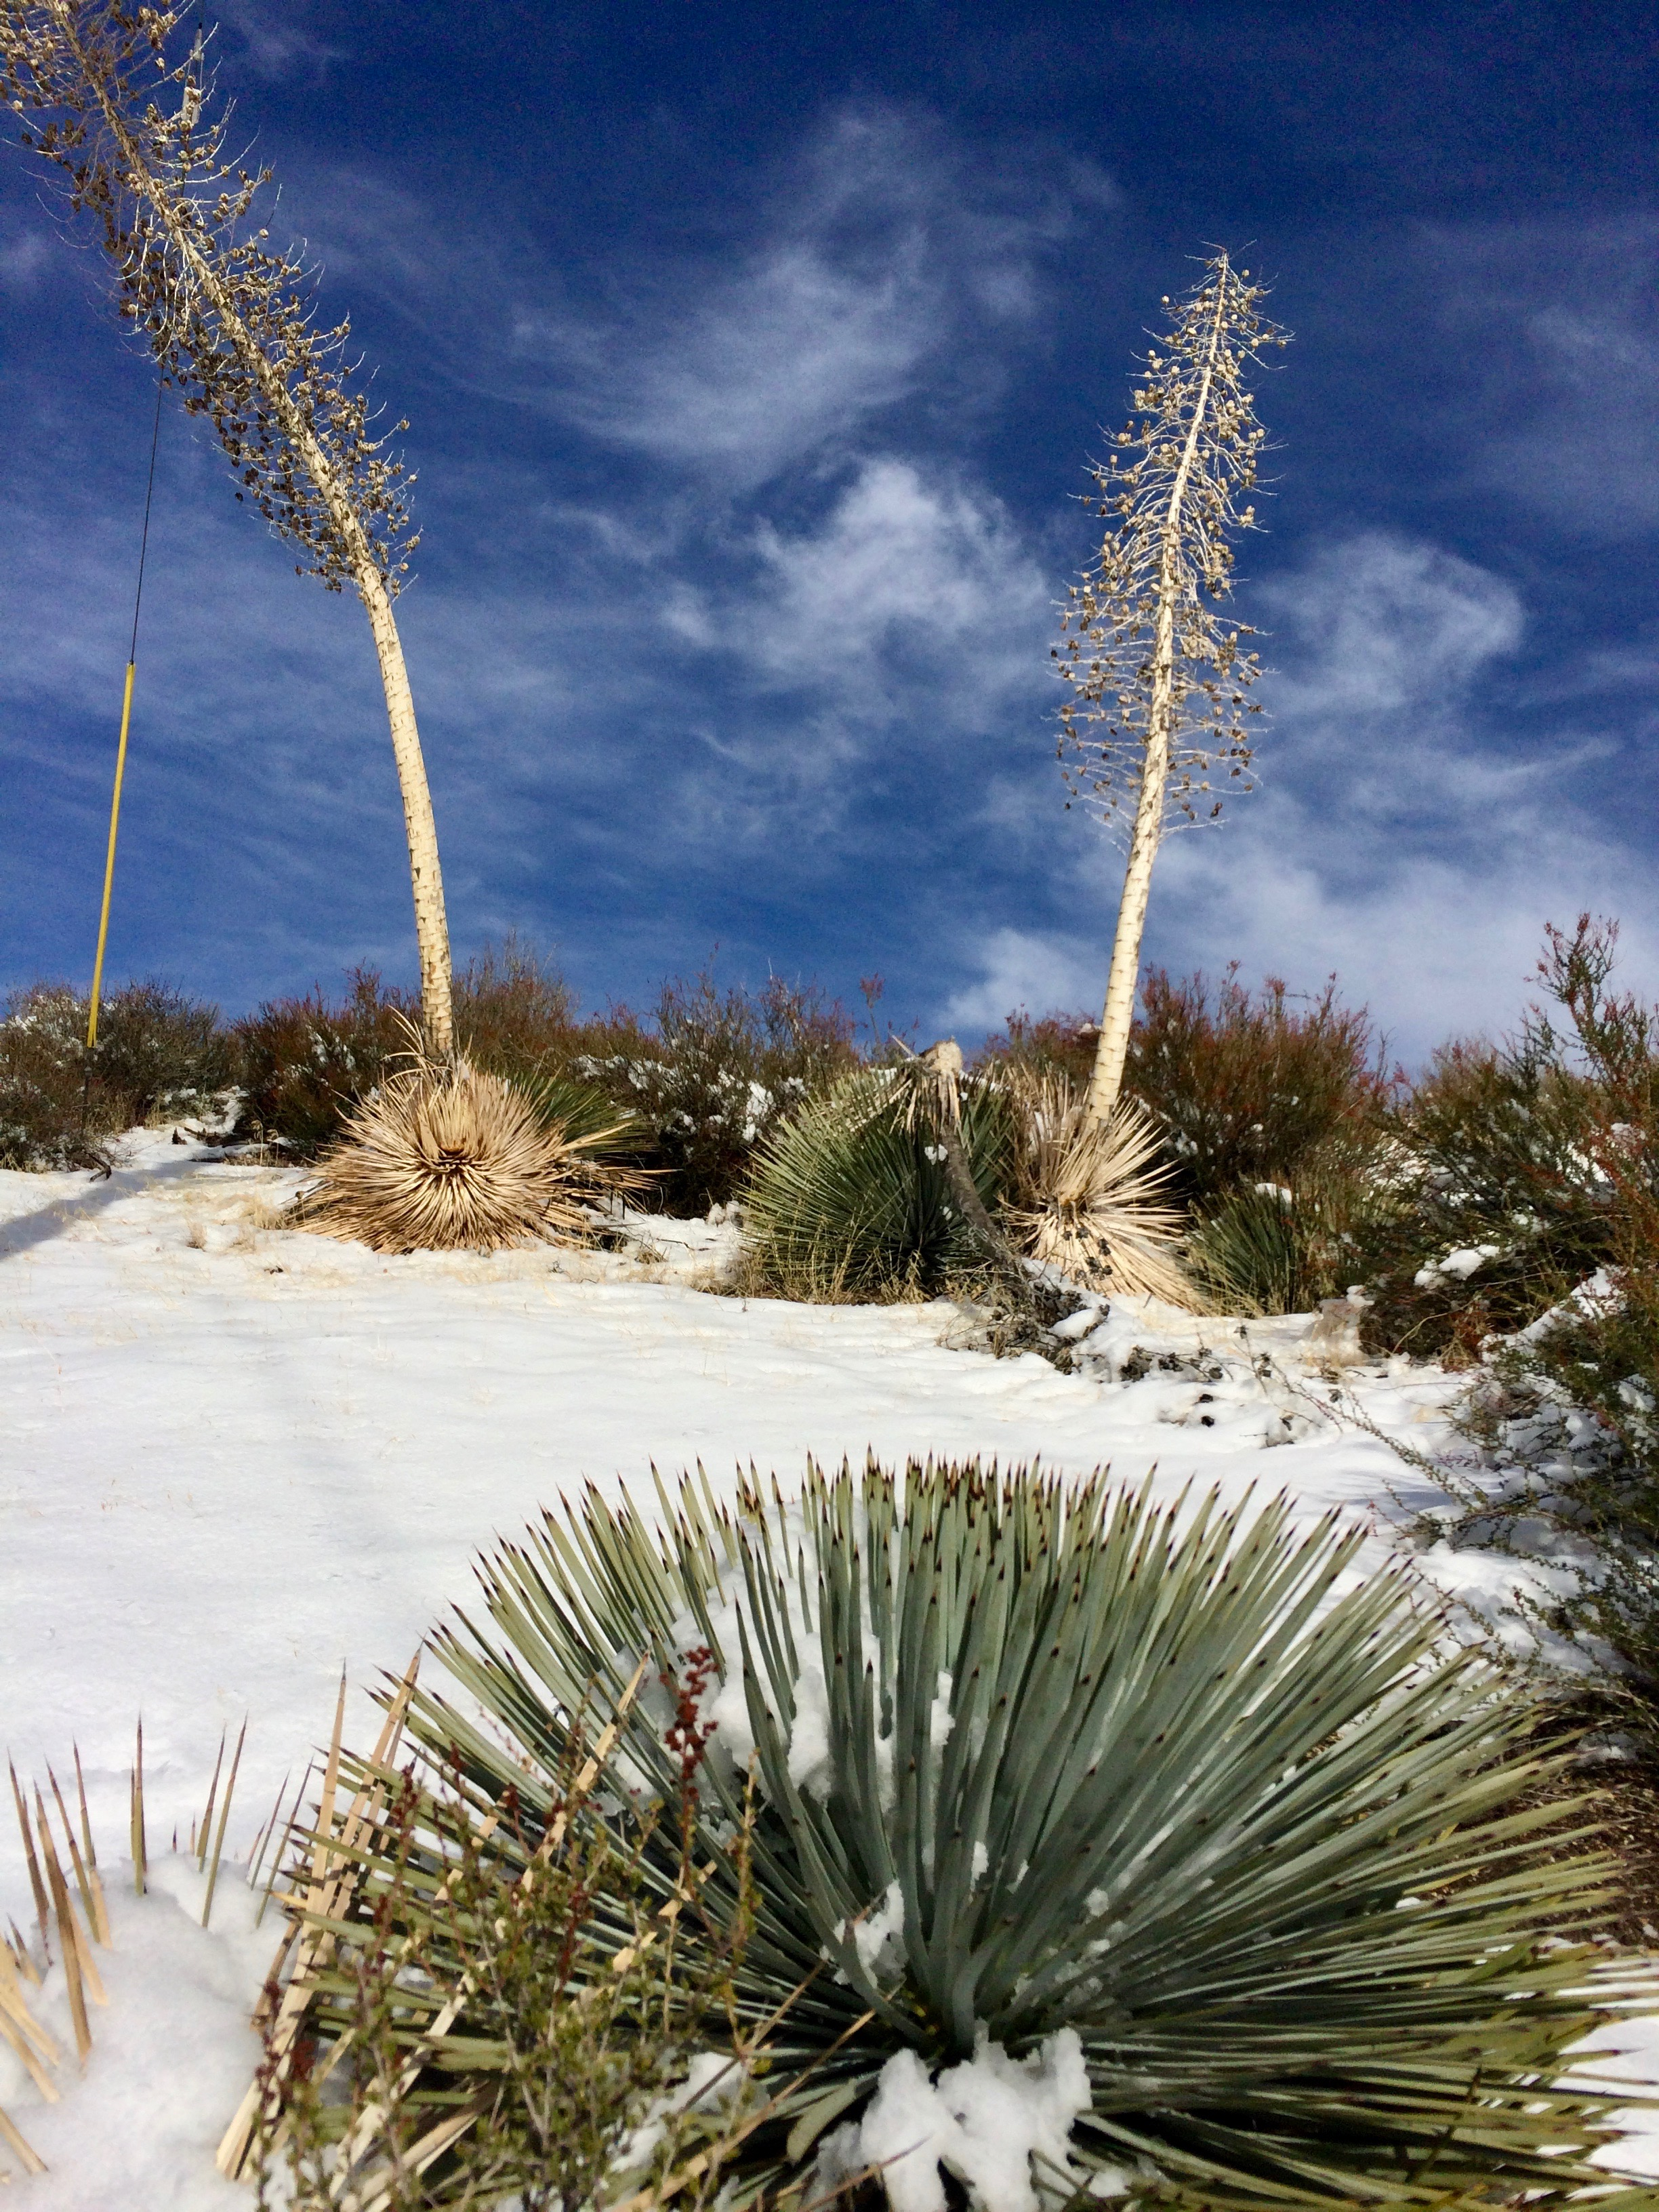 Southern California Contrast: Yuccas in the Snow (photo by Nikki Kreuzer)